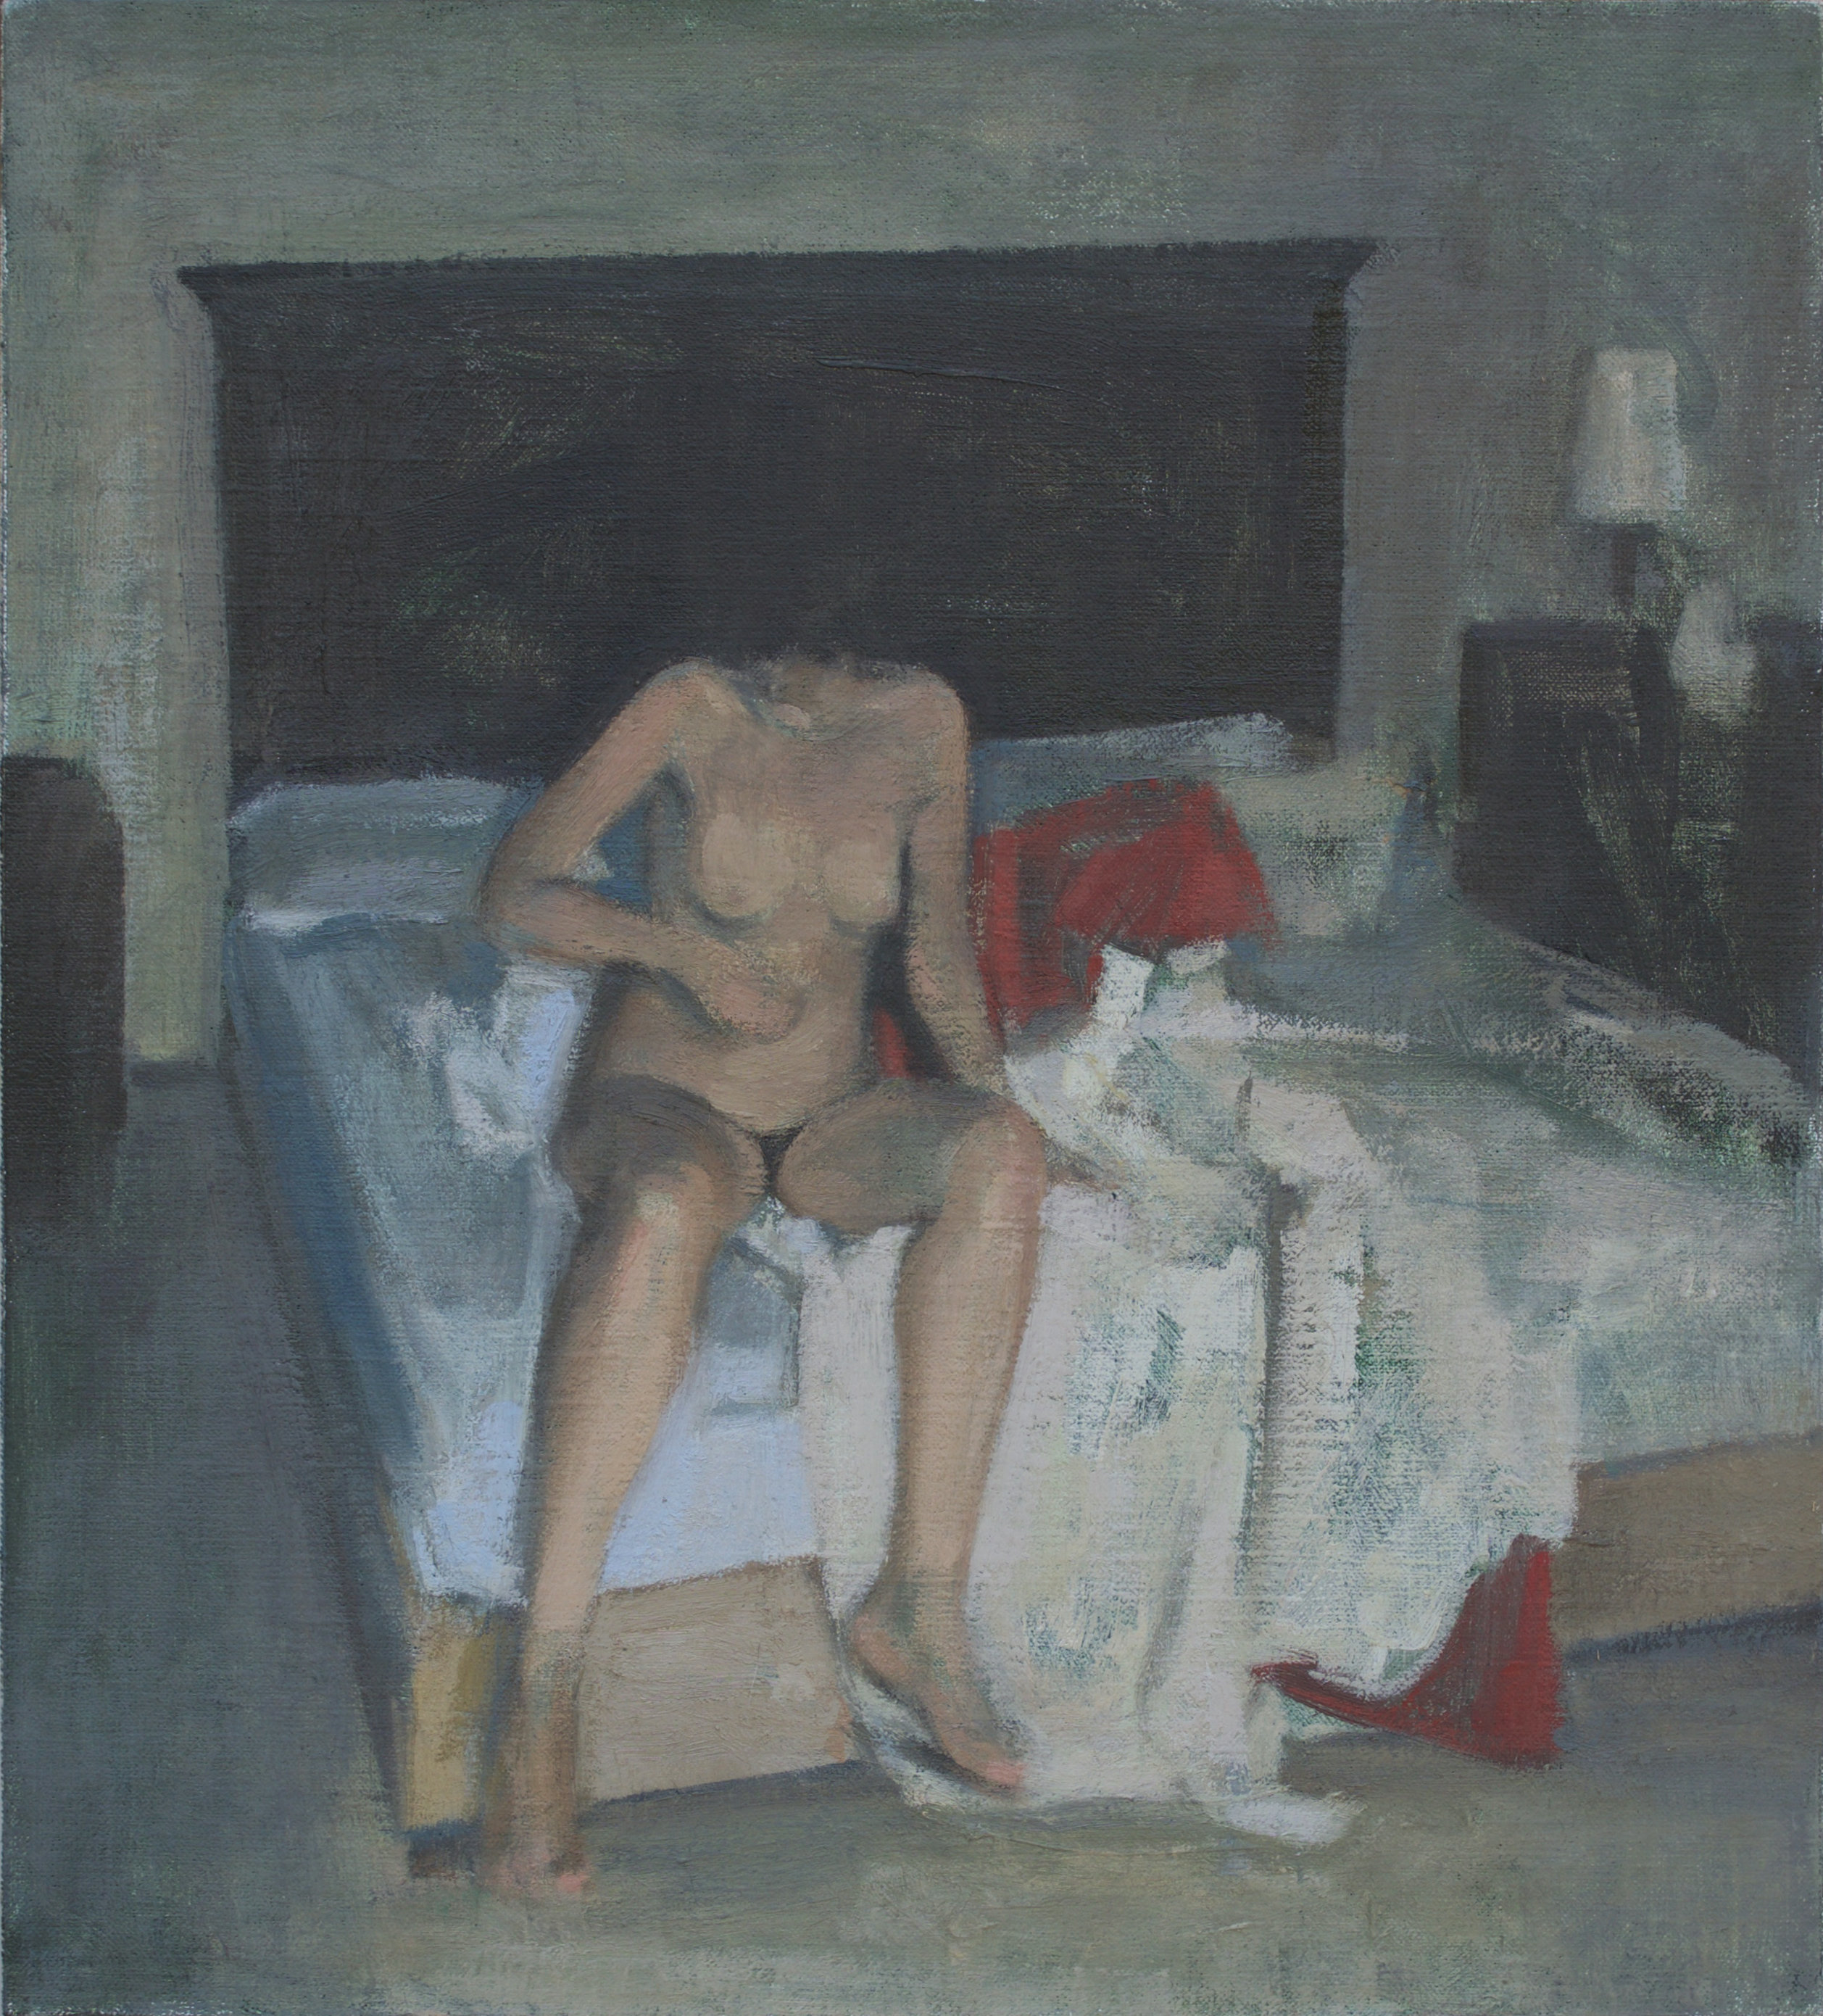 Girl on Bed, 2018